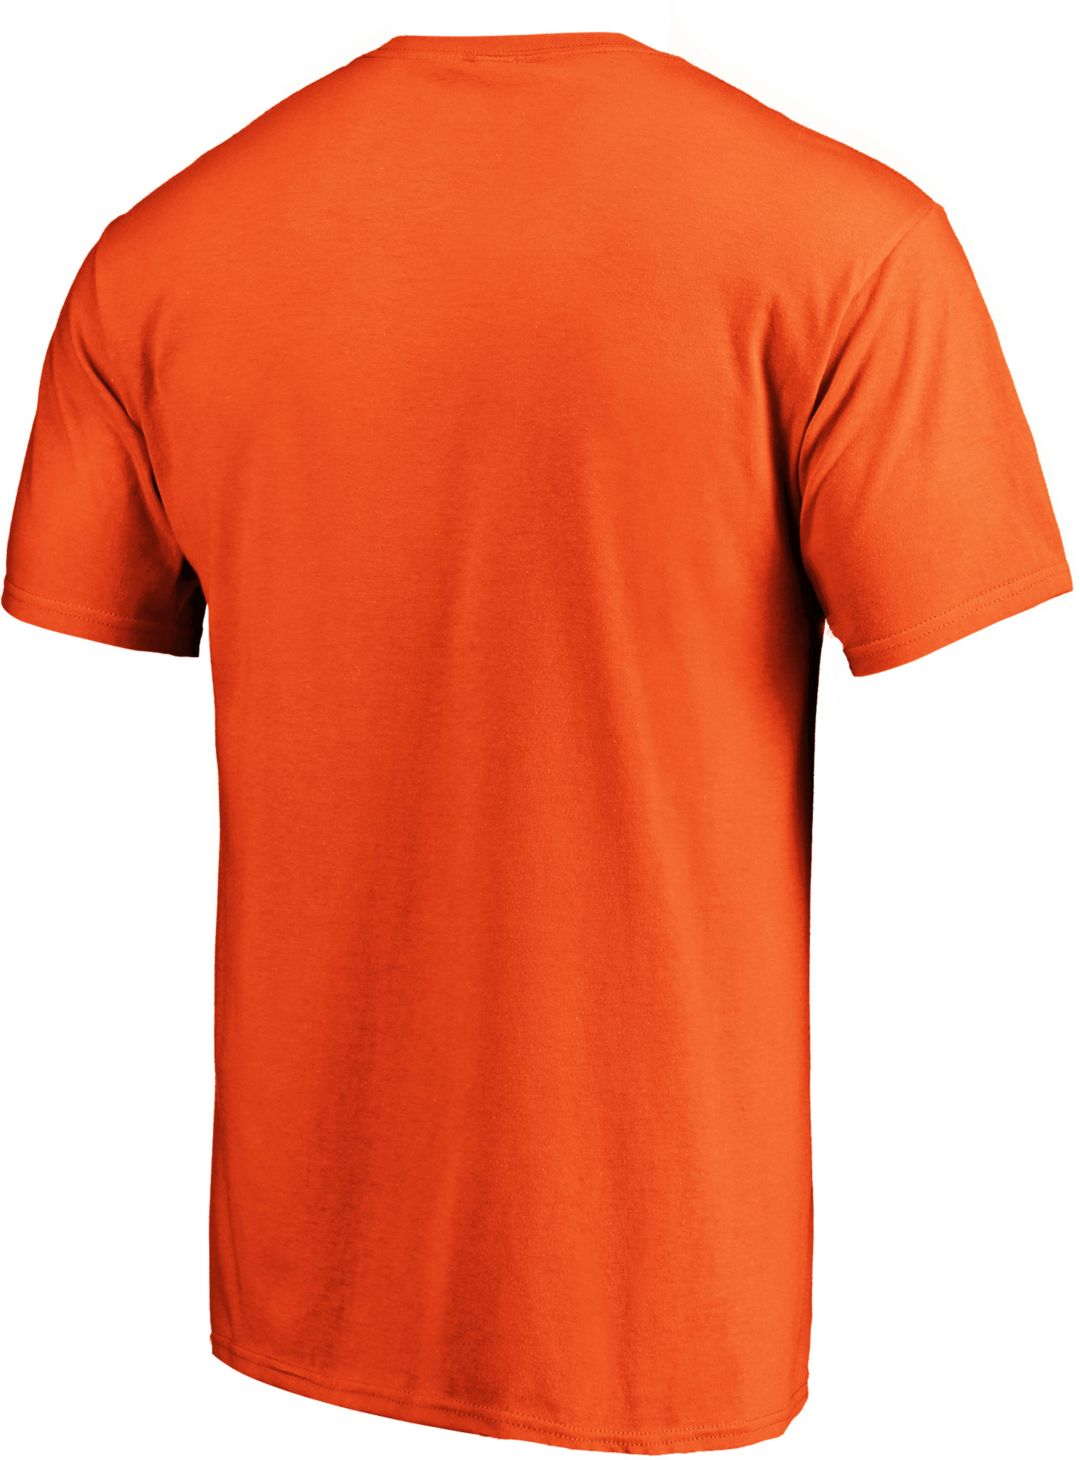 separation shoes 97219 5fc01 MLS Men's FC Cincinnati Slash Dash Orange T-Shirt